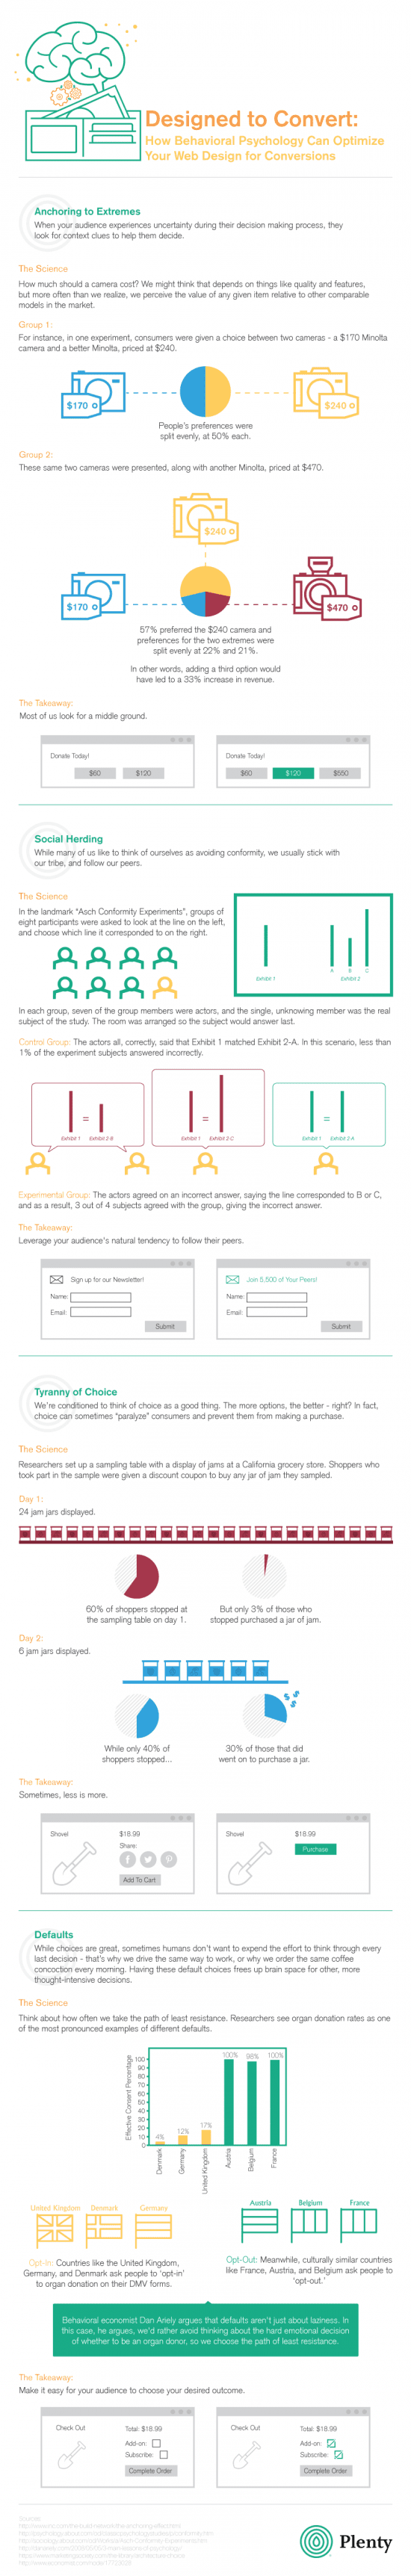 """Choice Architecture: How To """"Nudge"""" Your Website Visitors Into Conversions [Infographic]"""